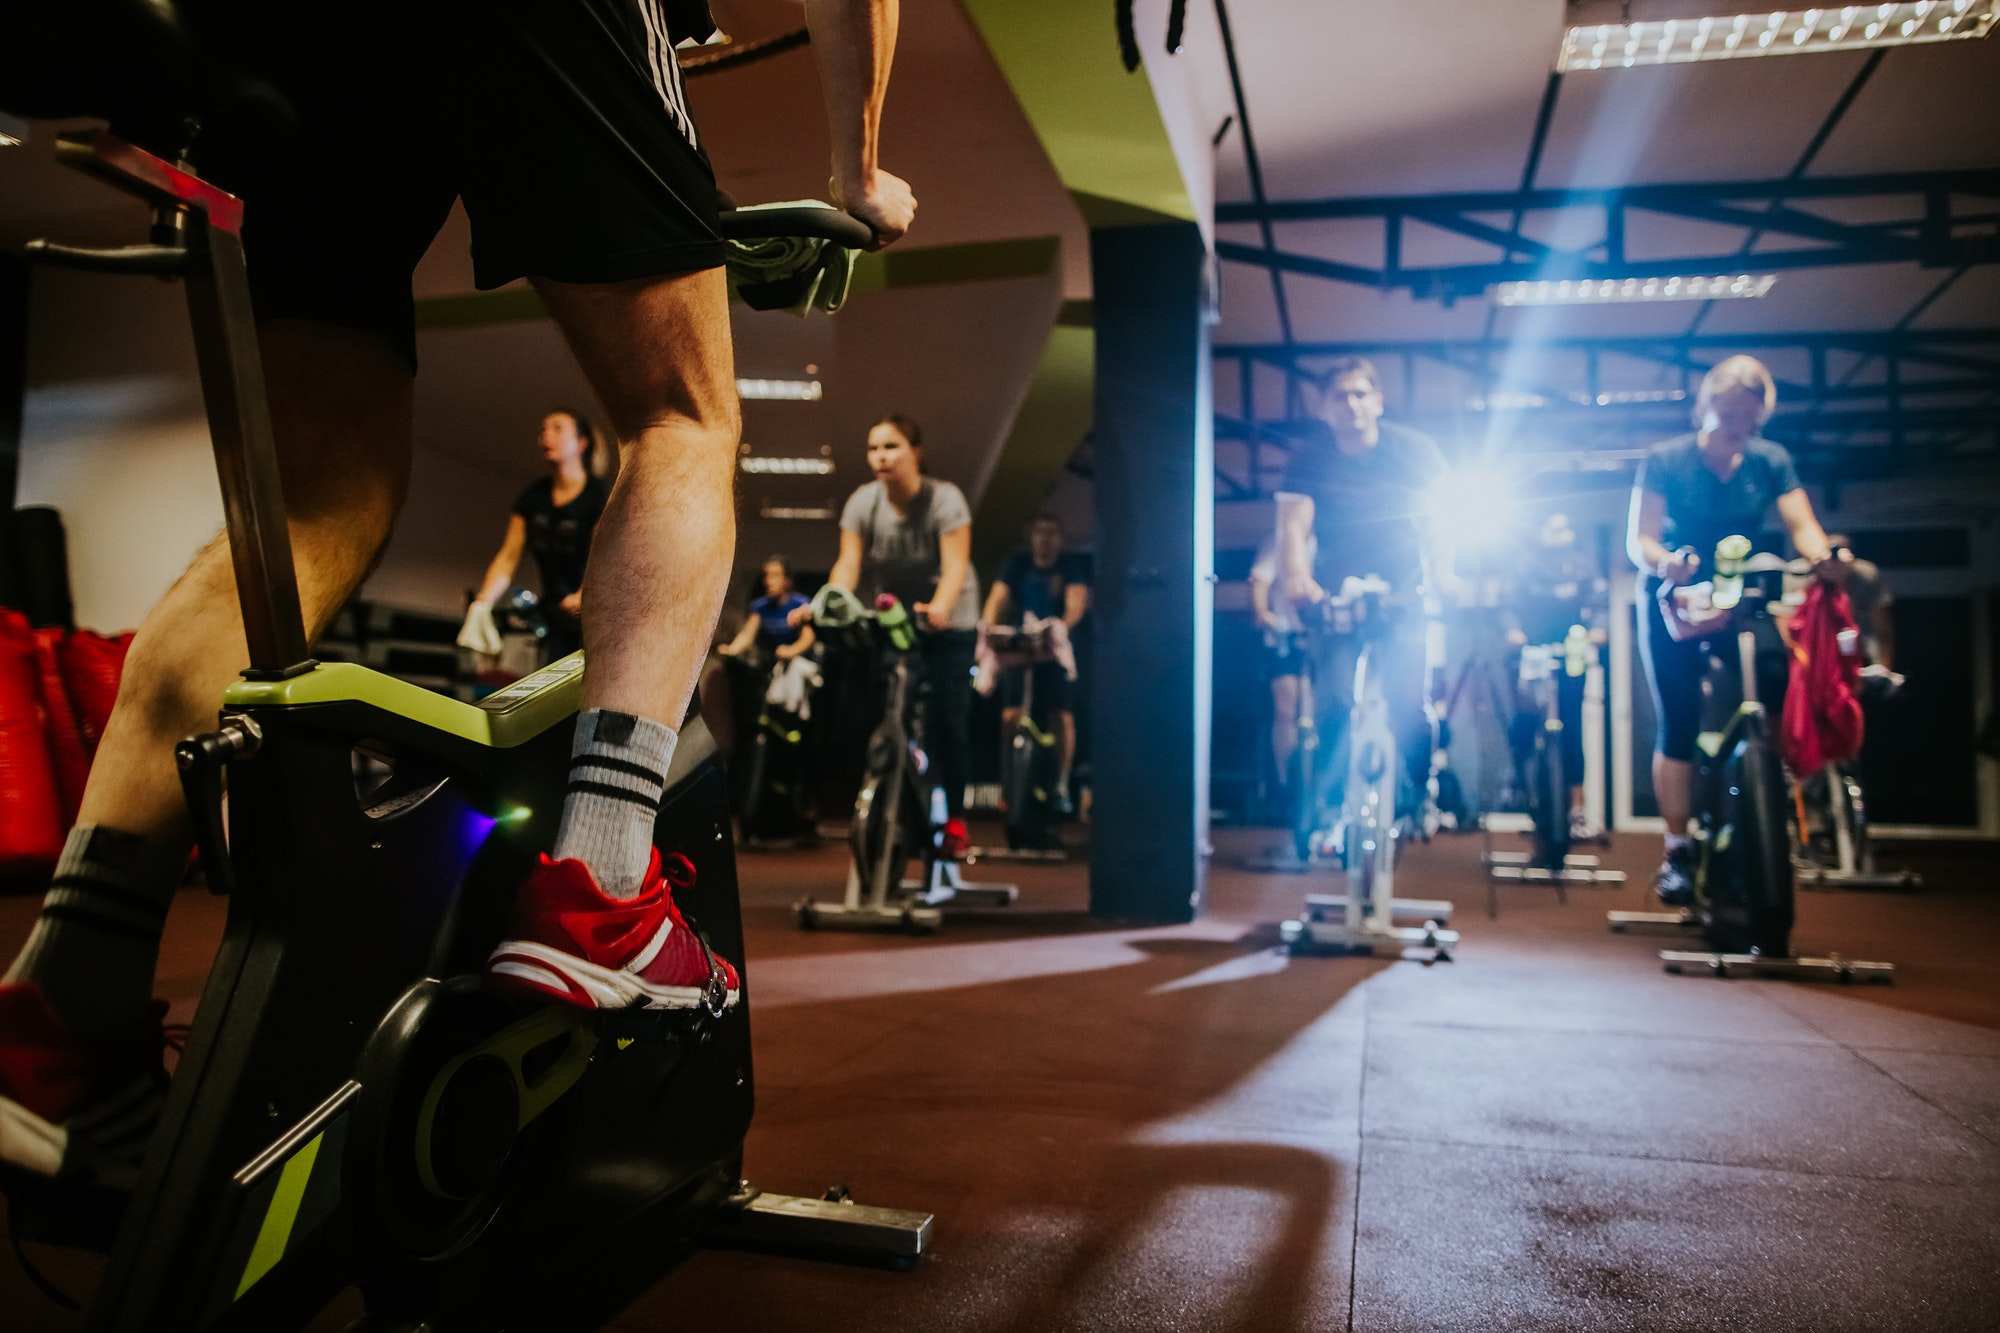 cycling class group indoors